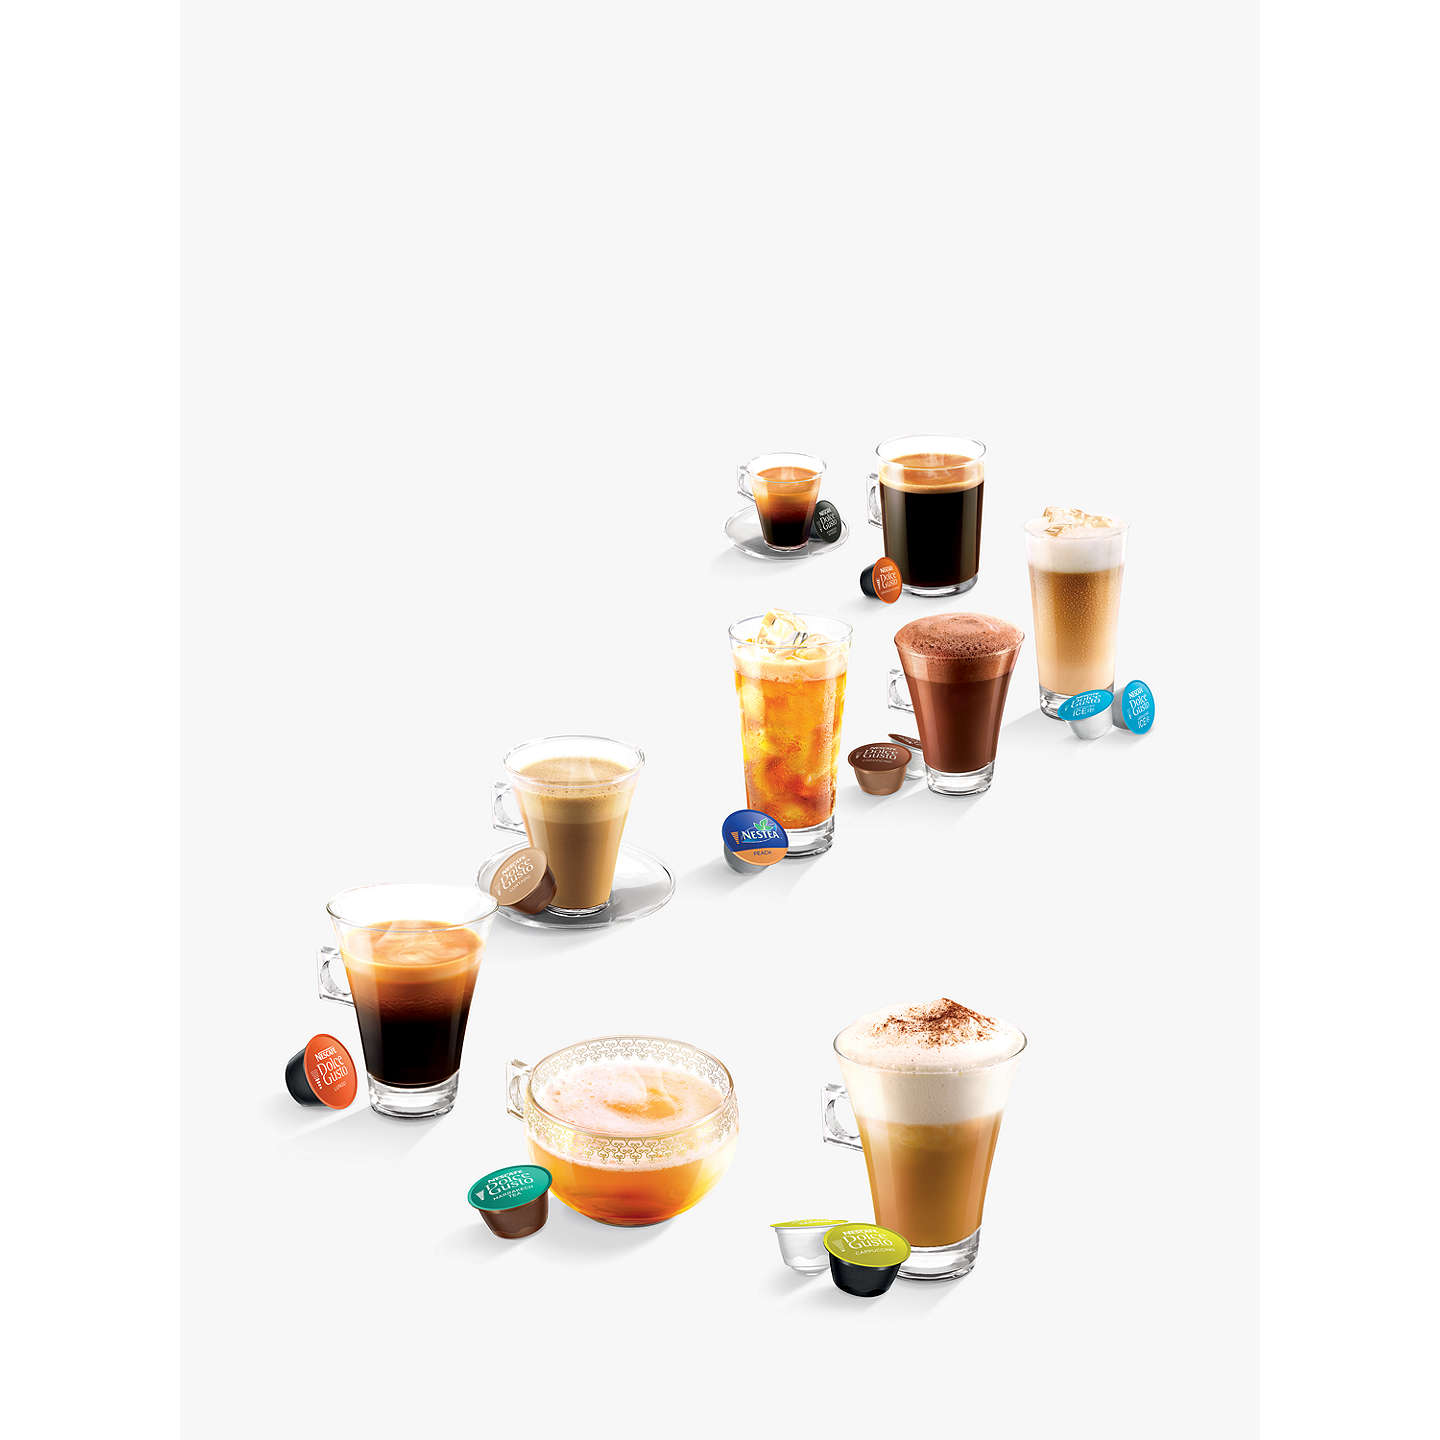 dolce gusto lumio coffee machine by krups black at john lewis. Black Bedroom Furniture Sets. Home Design Ideas